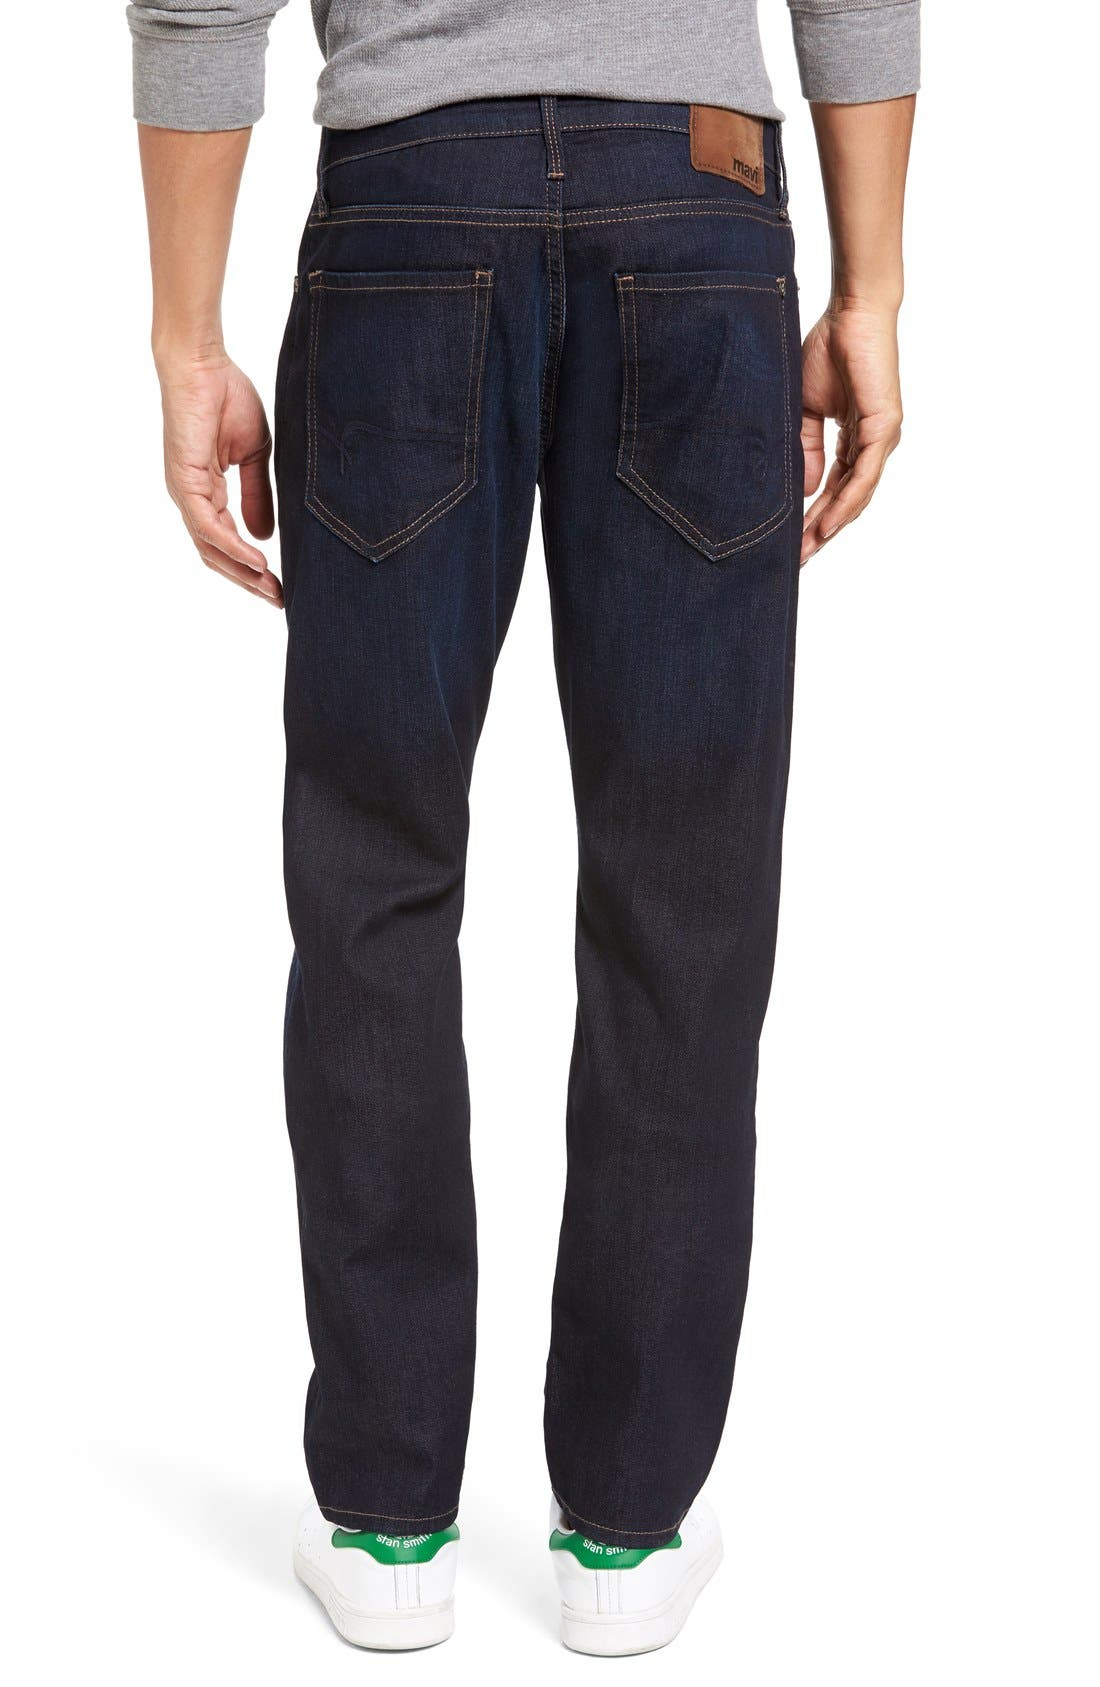 Marcus Slim Straight Leg Jeans,                             Alternate thumbnail 2, color,                             Rinse Brushed Williamsburg